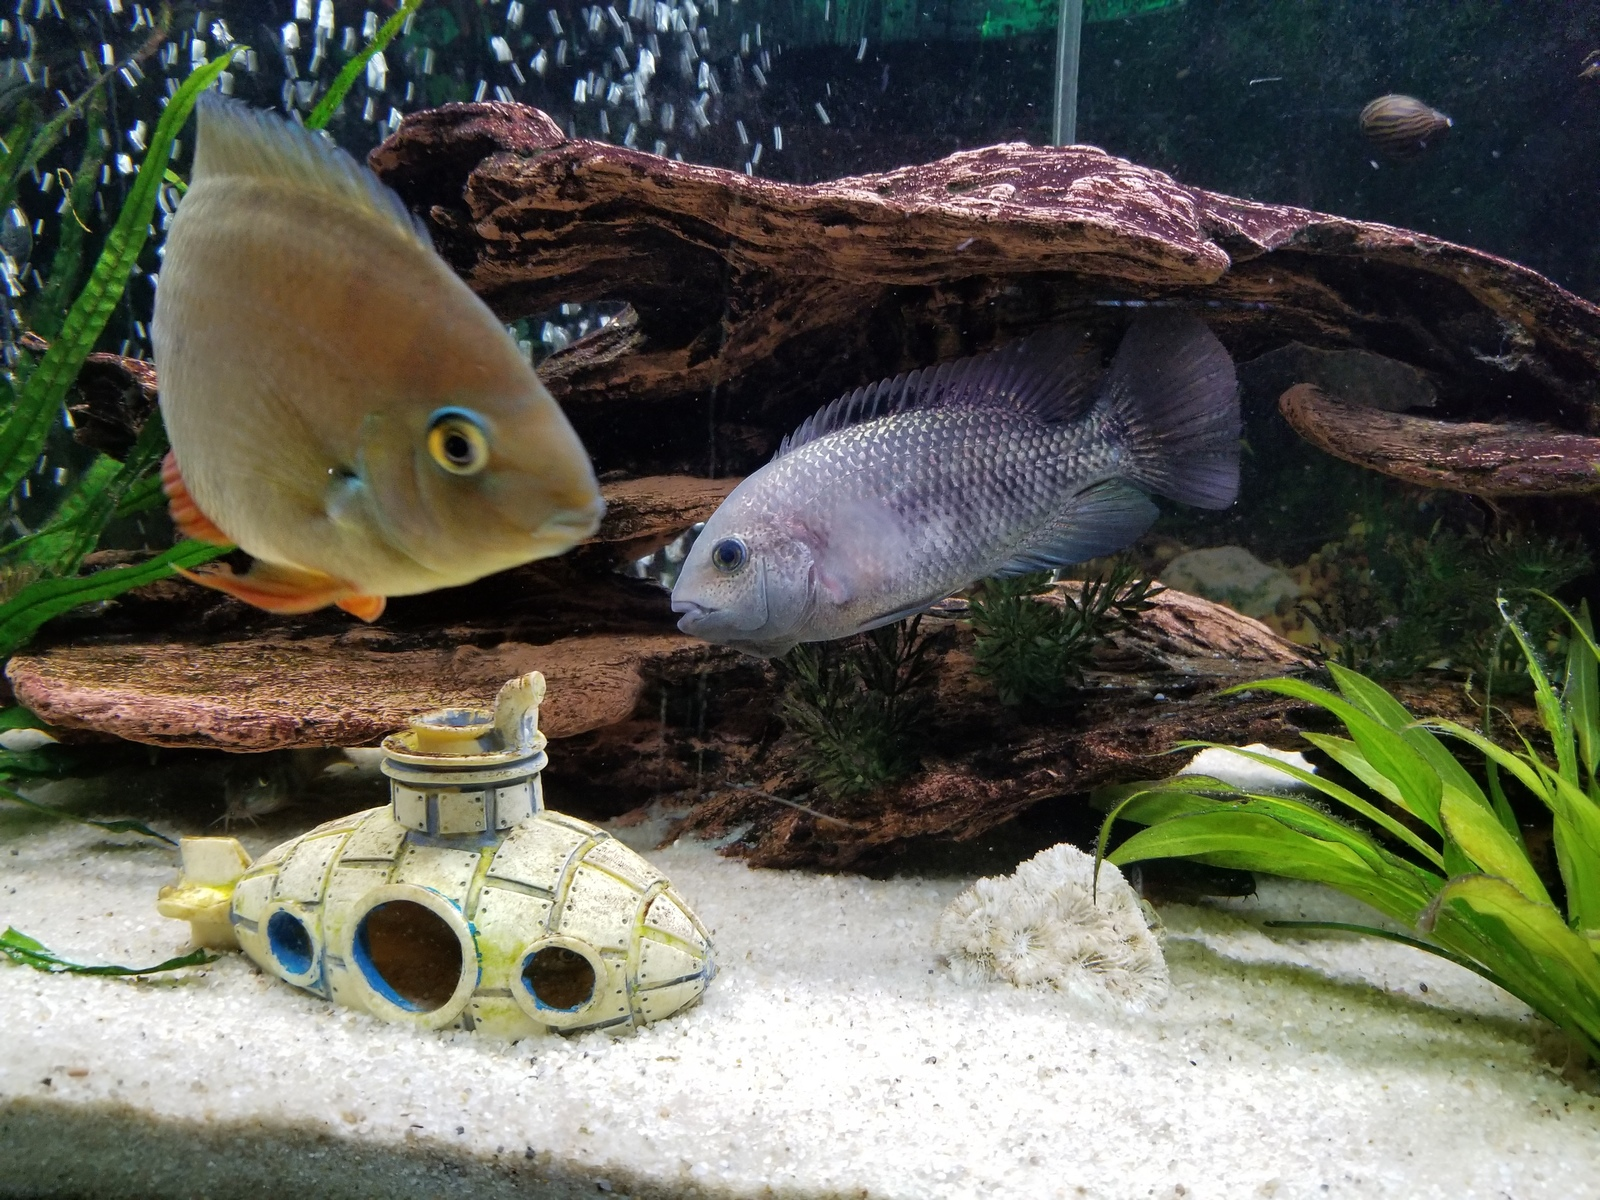 New guy fish store said aequidens diadema but i don't think so any thoughts  | by Dan Burkett